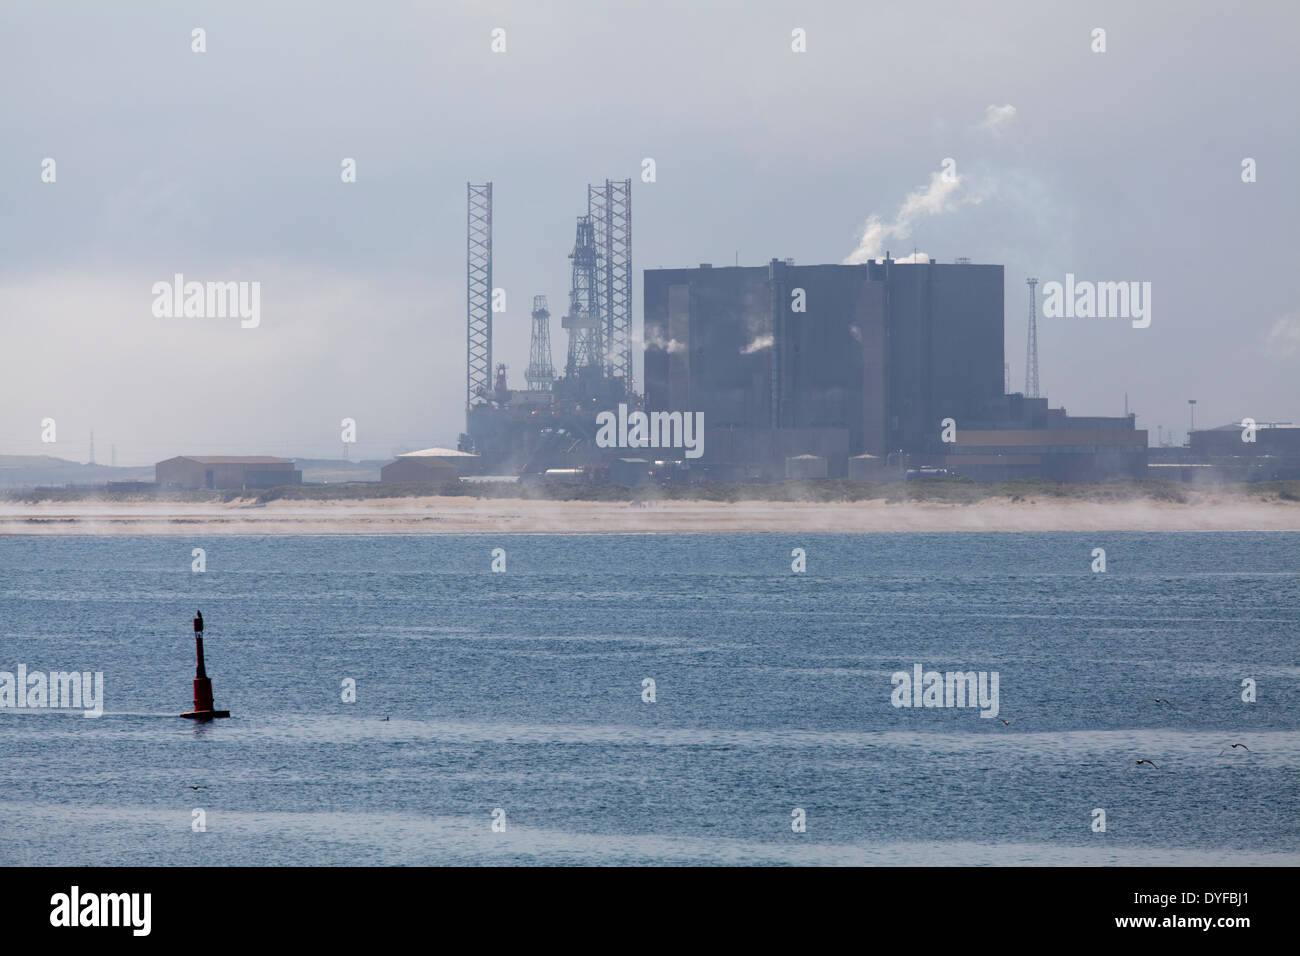 Hartlepool Nuclear Power Station on the banks of the River Tees, UK - Stock Image